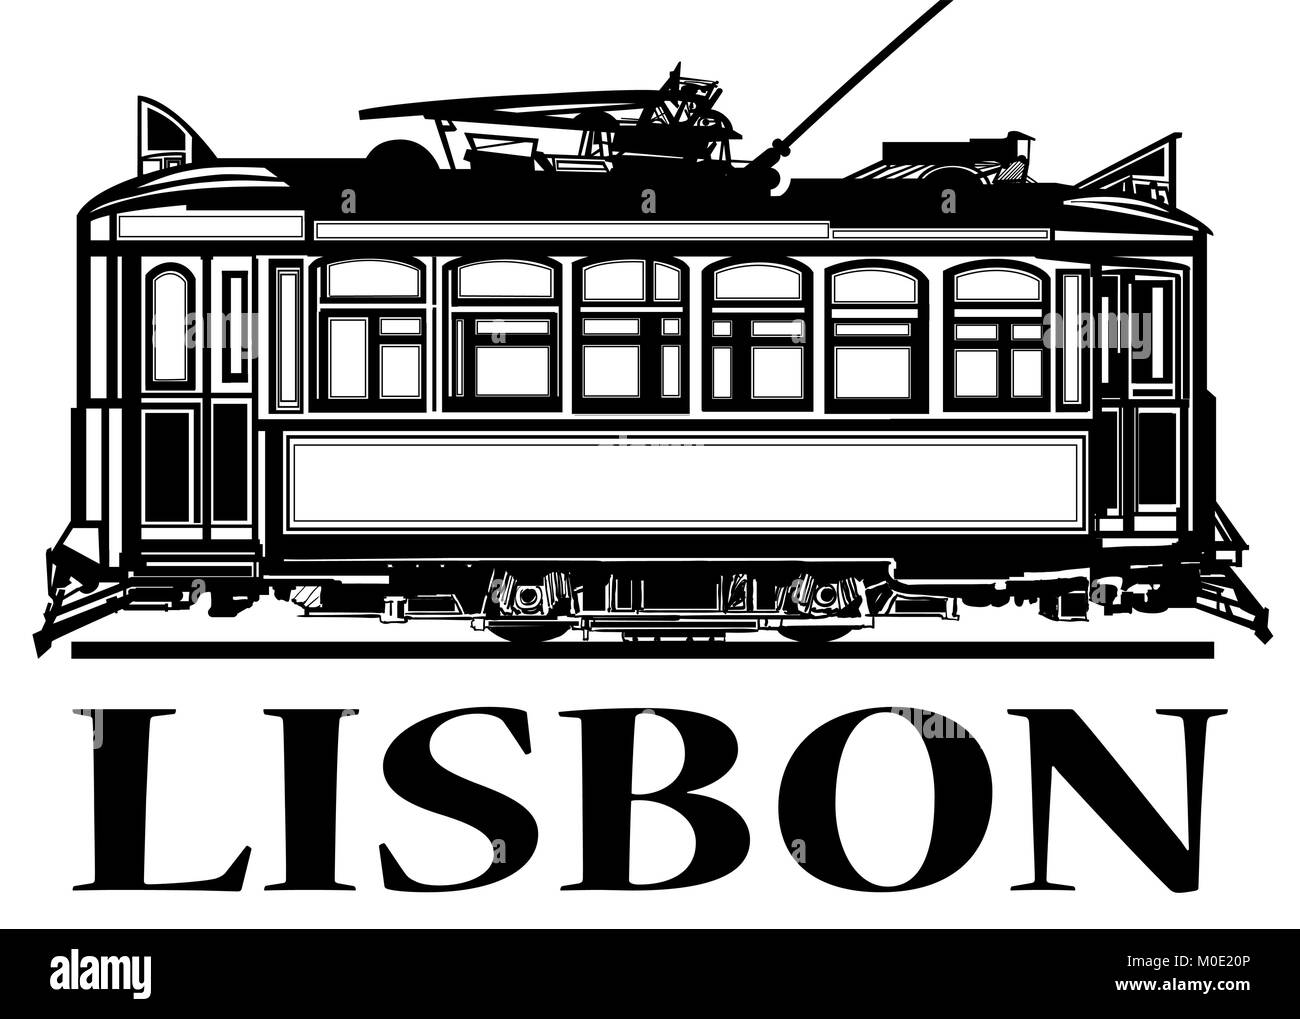 Old classic tramway of Lisbon - vector illustration - Stock Vector